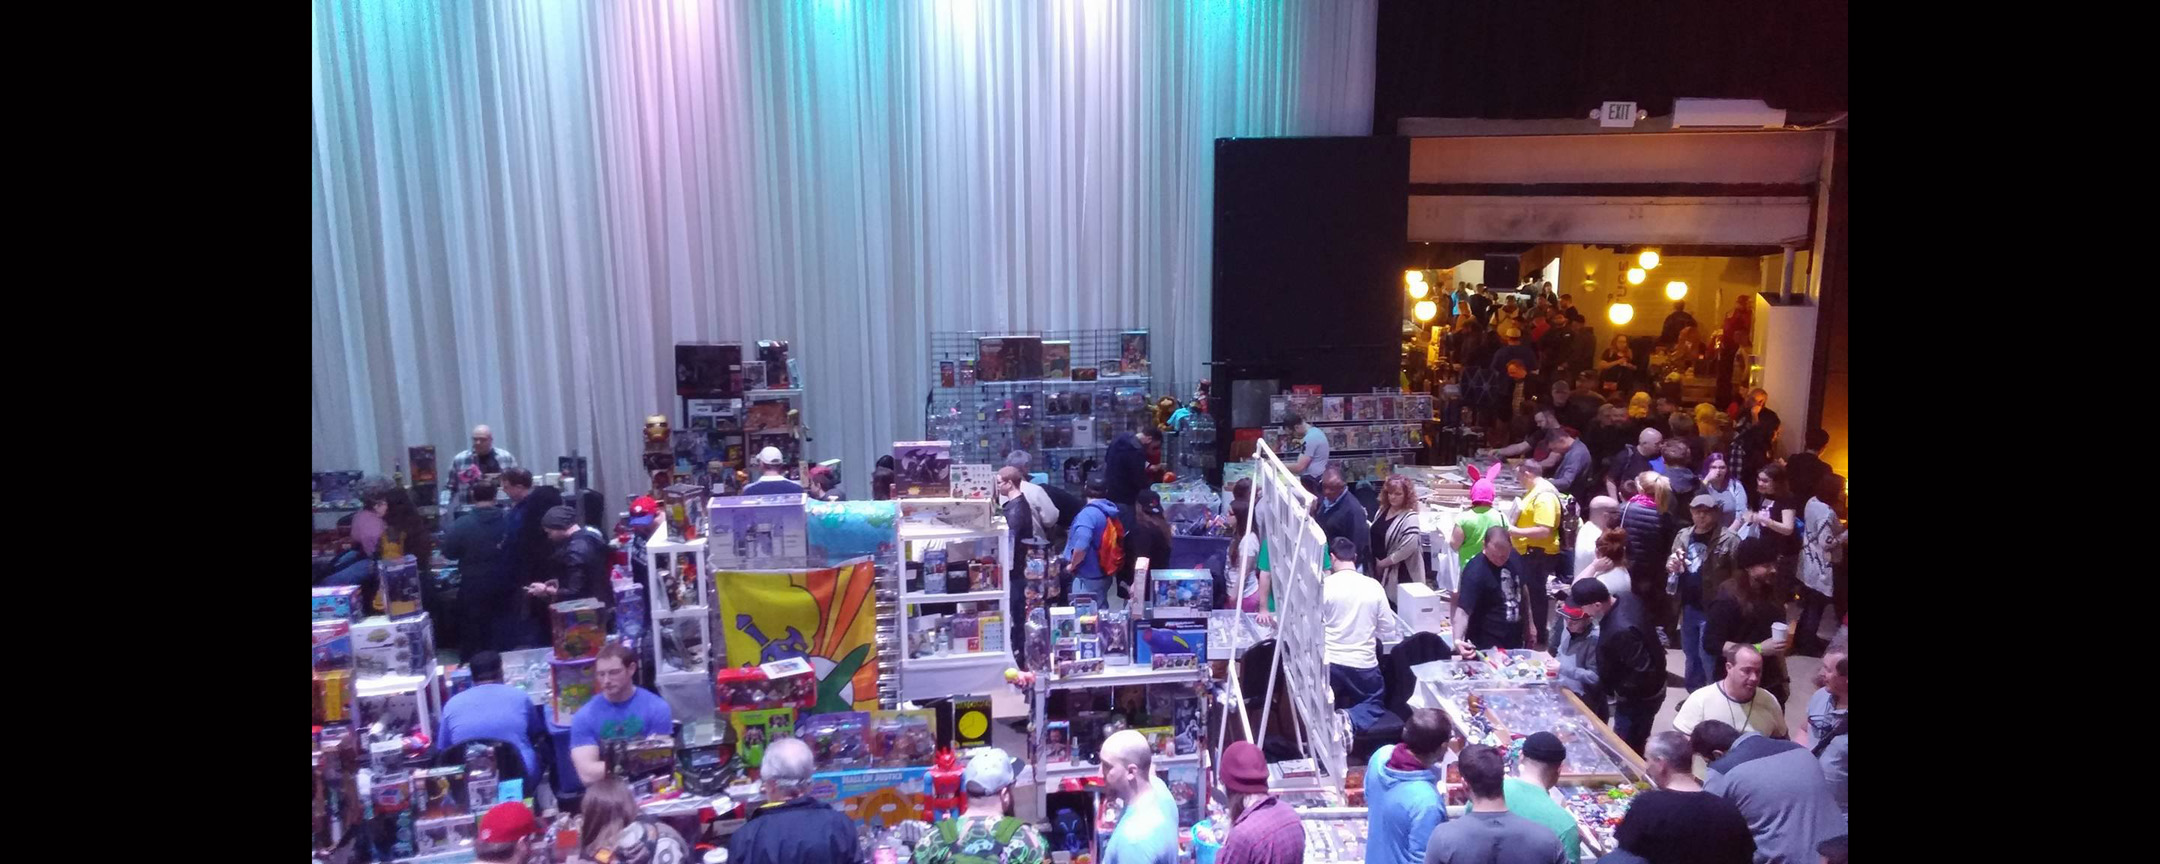 The Largest Comic And Toy Expo In Bucks County!